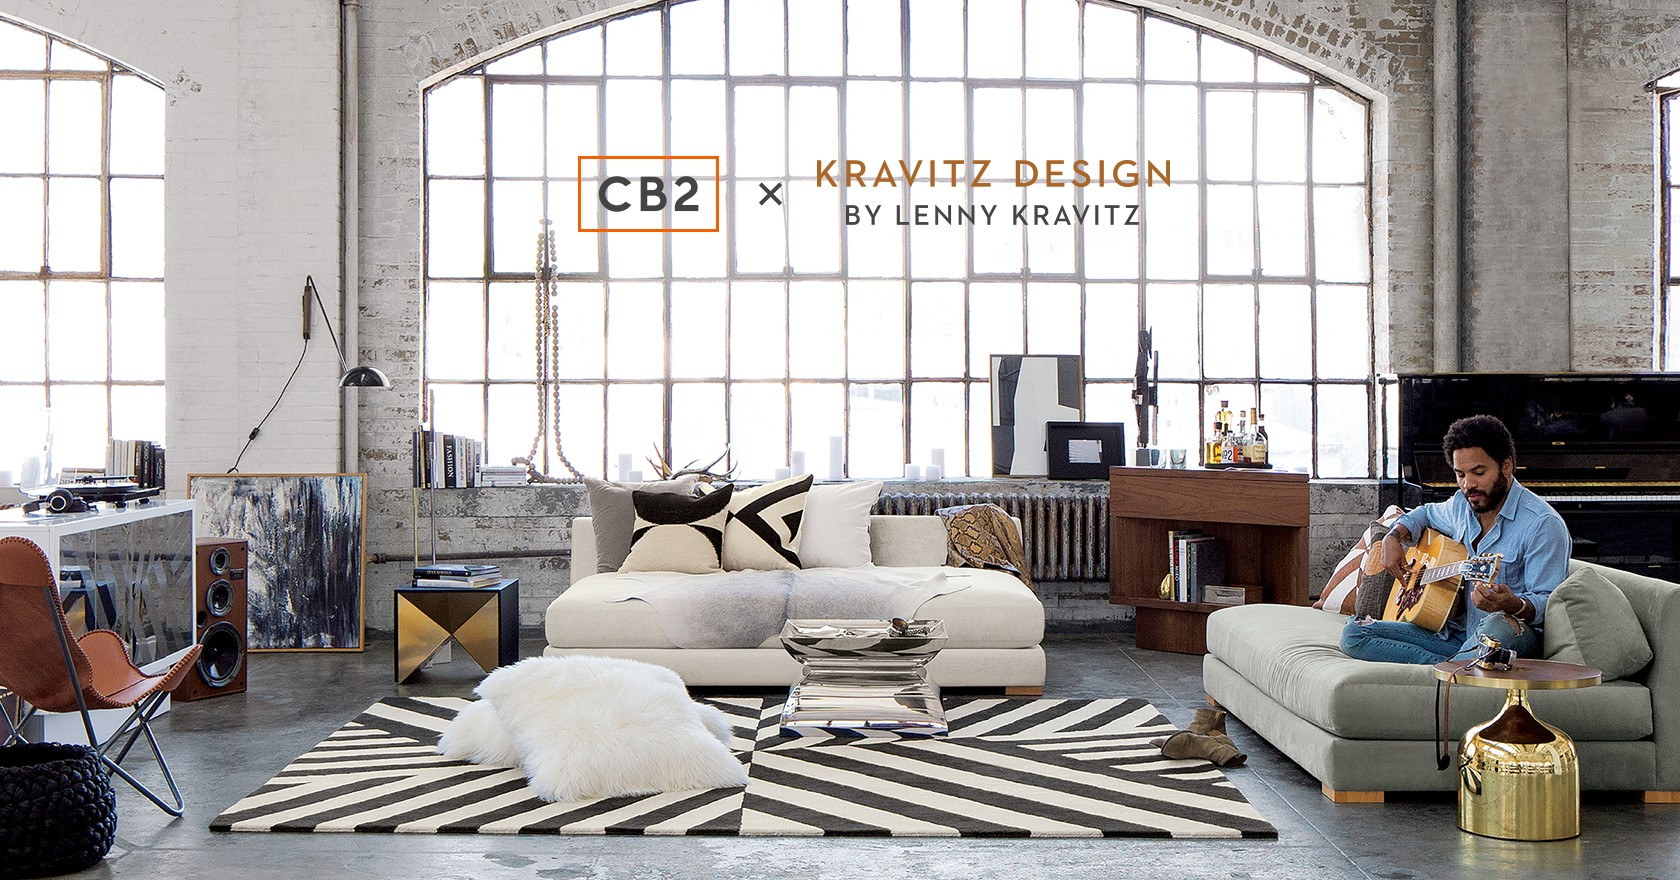 CB2 x Kravitz Design